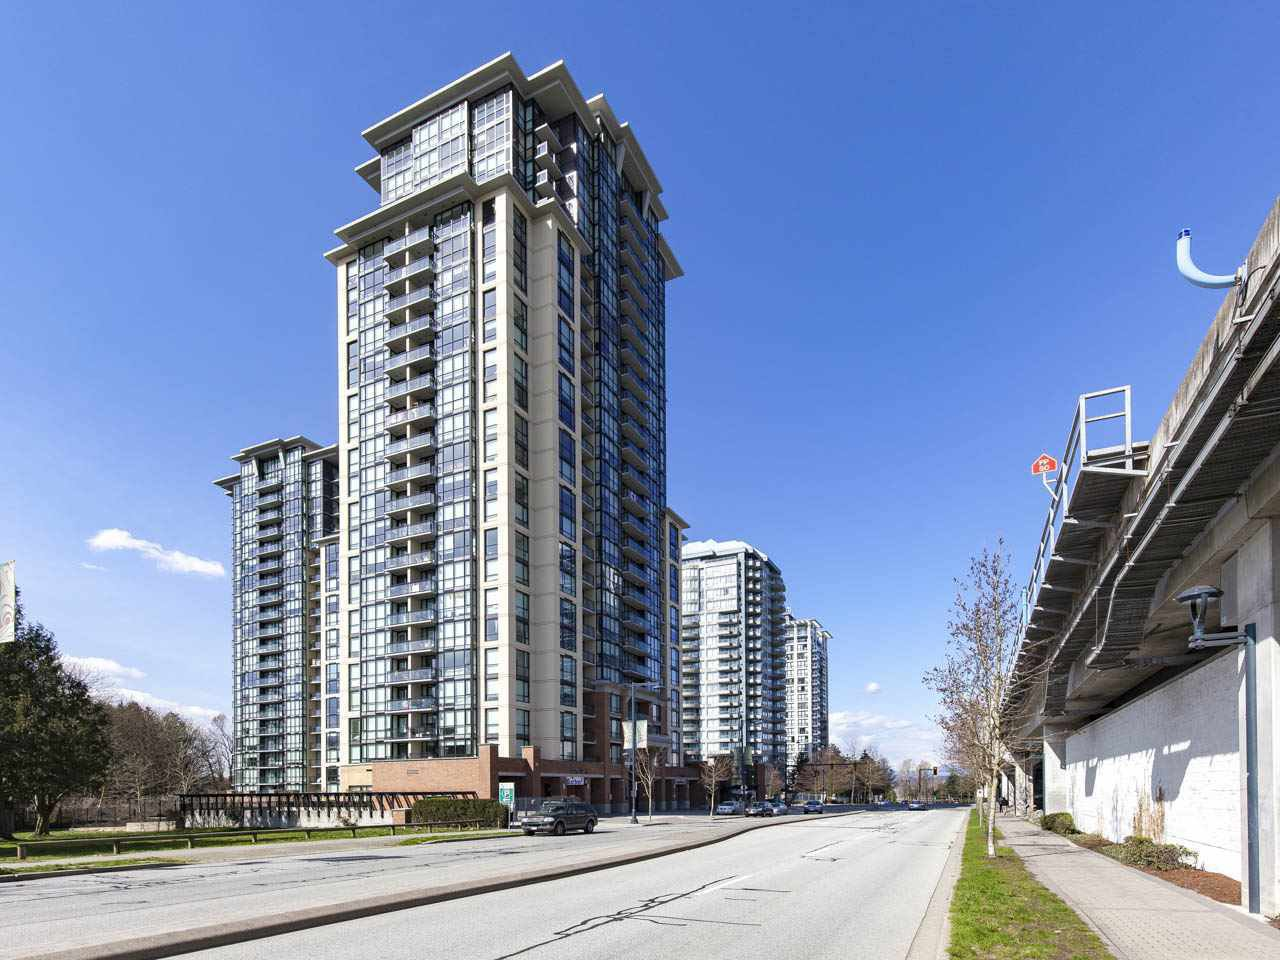 Main Photo: 206 10777 UNIVERSITY Drive in Surrey: Whalley Condo for sale (North Surrey)  : MLS®# R2166416